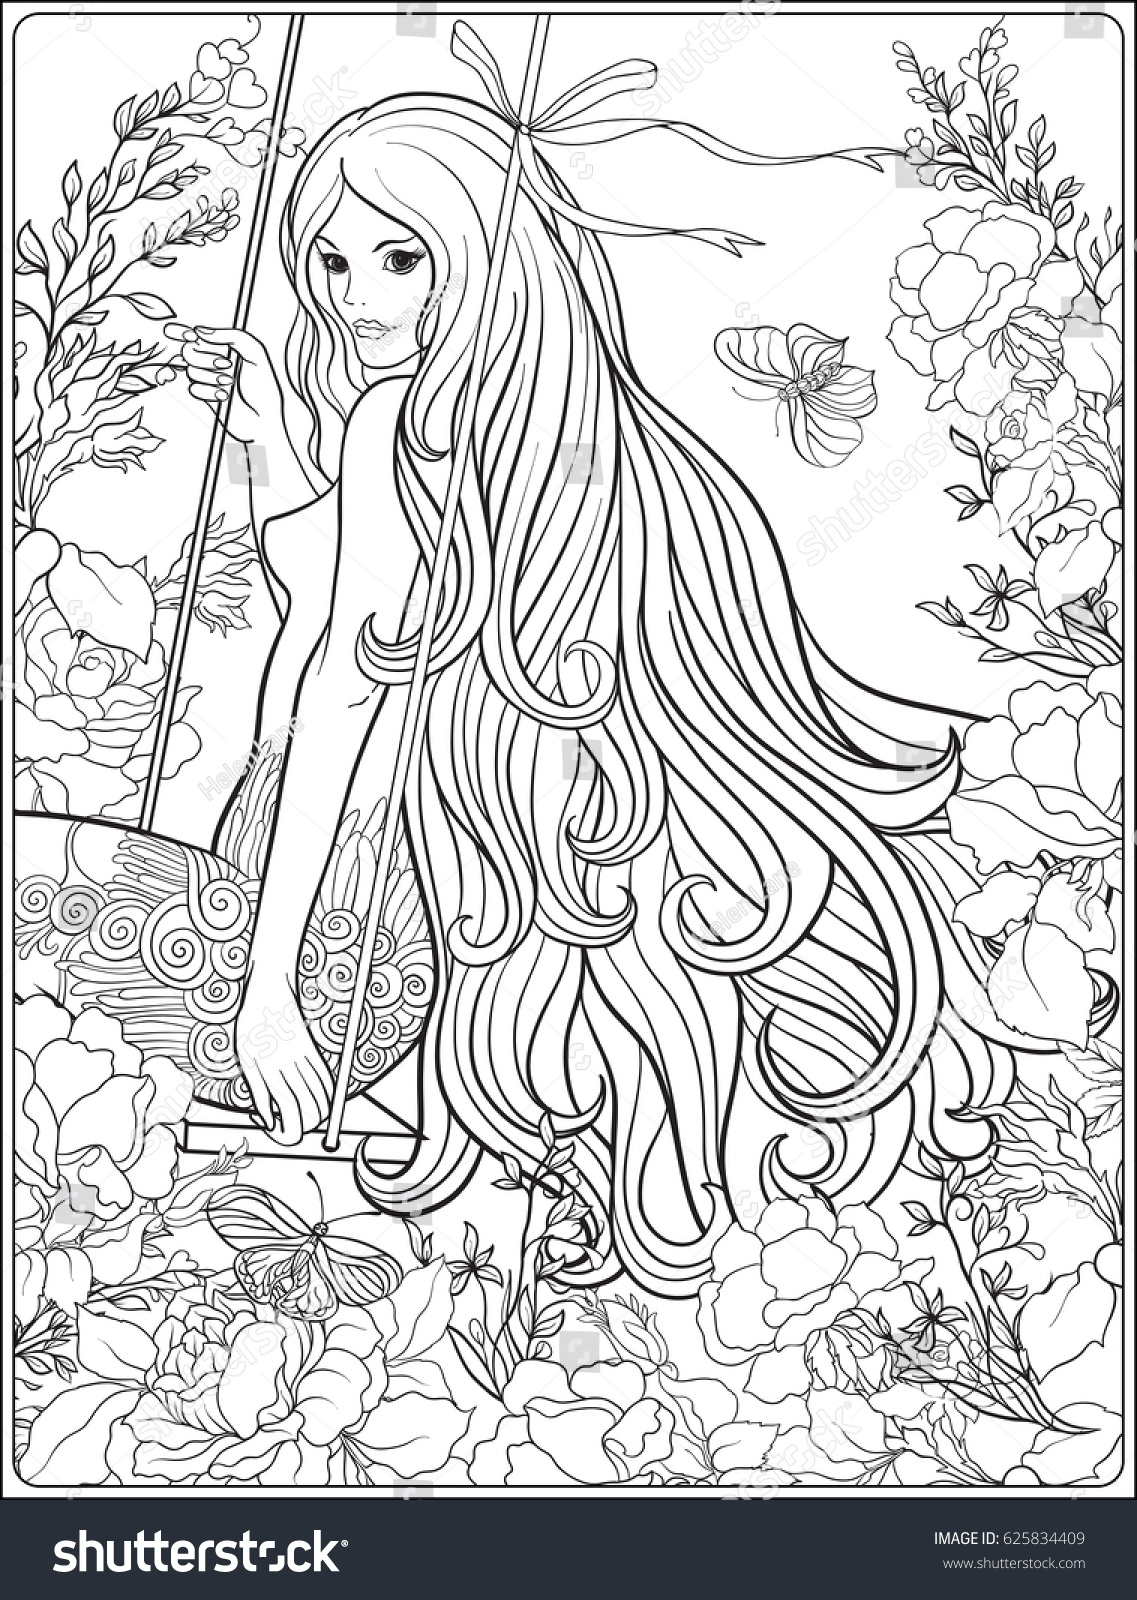 Young Beautiful Girl With Long Hair On Swing In Rose Garden Stock Line Vector Illustration